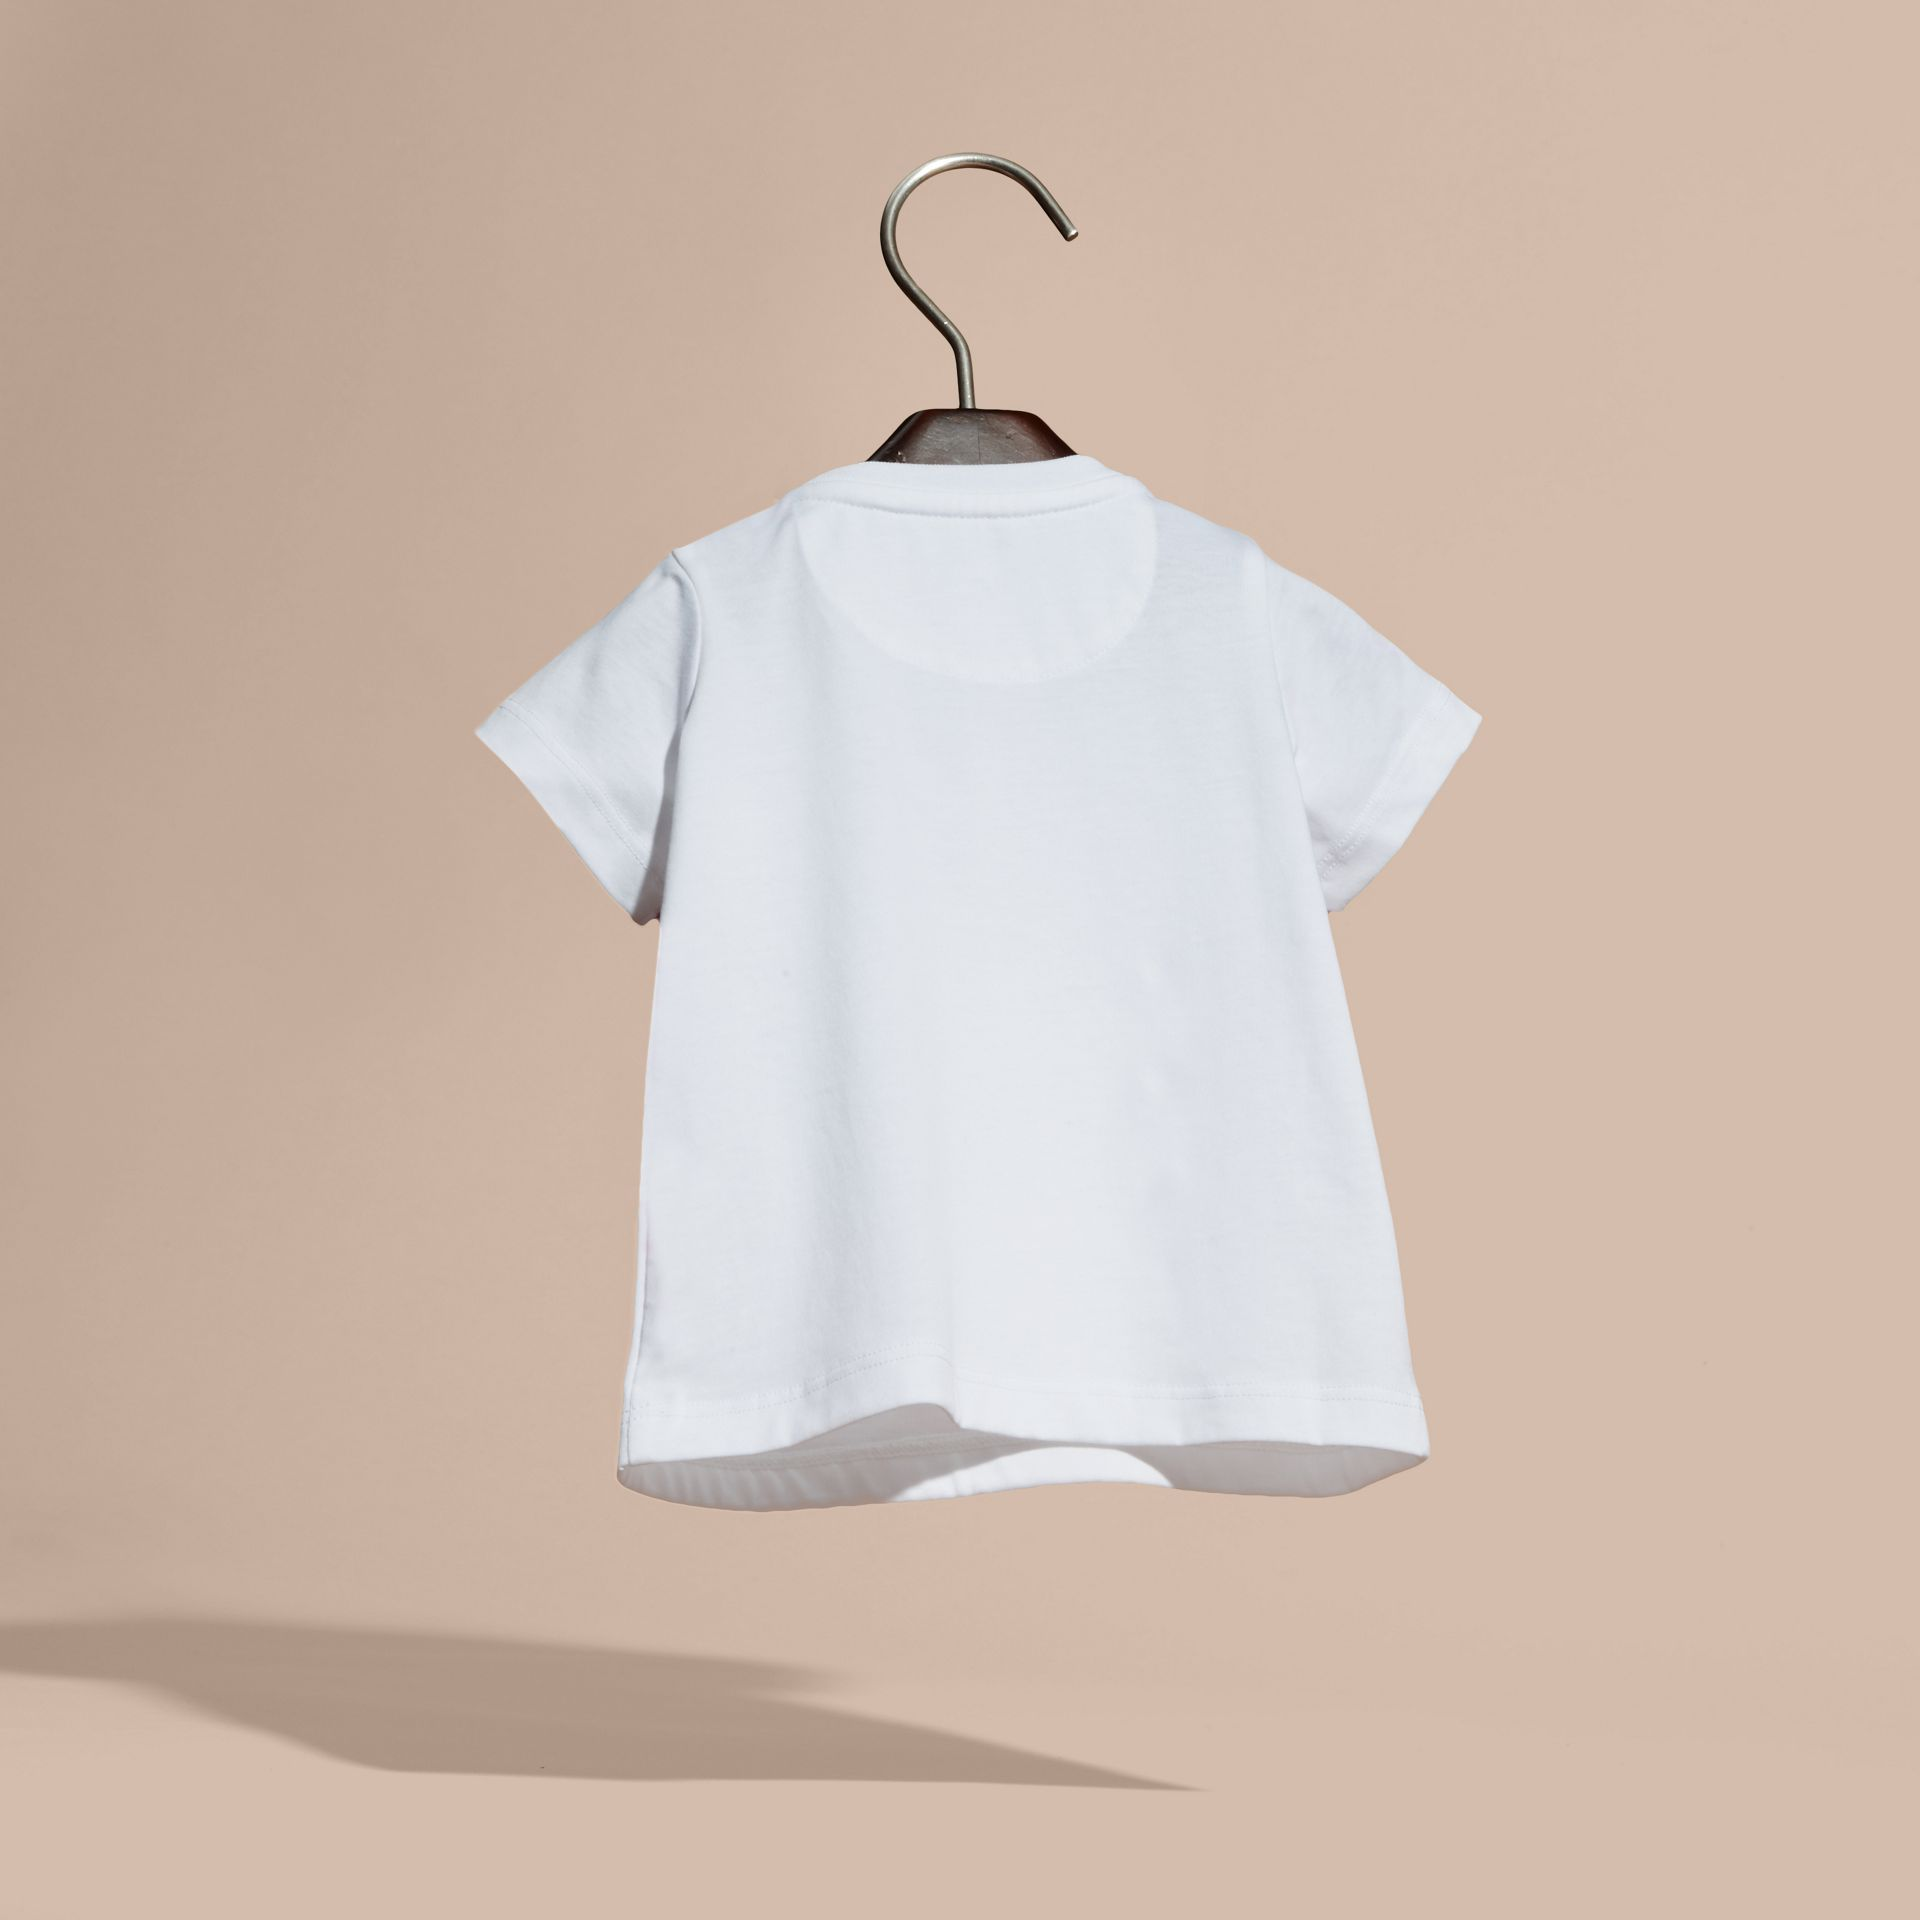 White Appliquéd and Embroidered Weather Graphic Cotton T-Shirt - gallery image 4